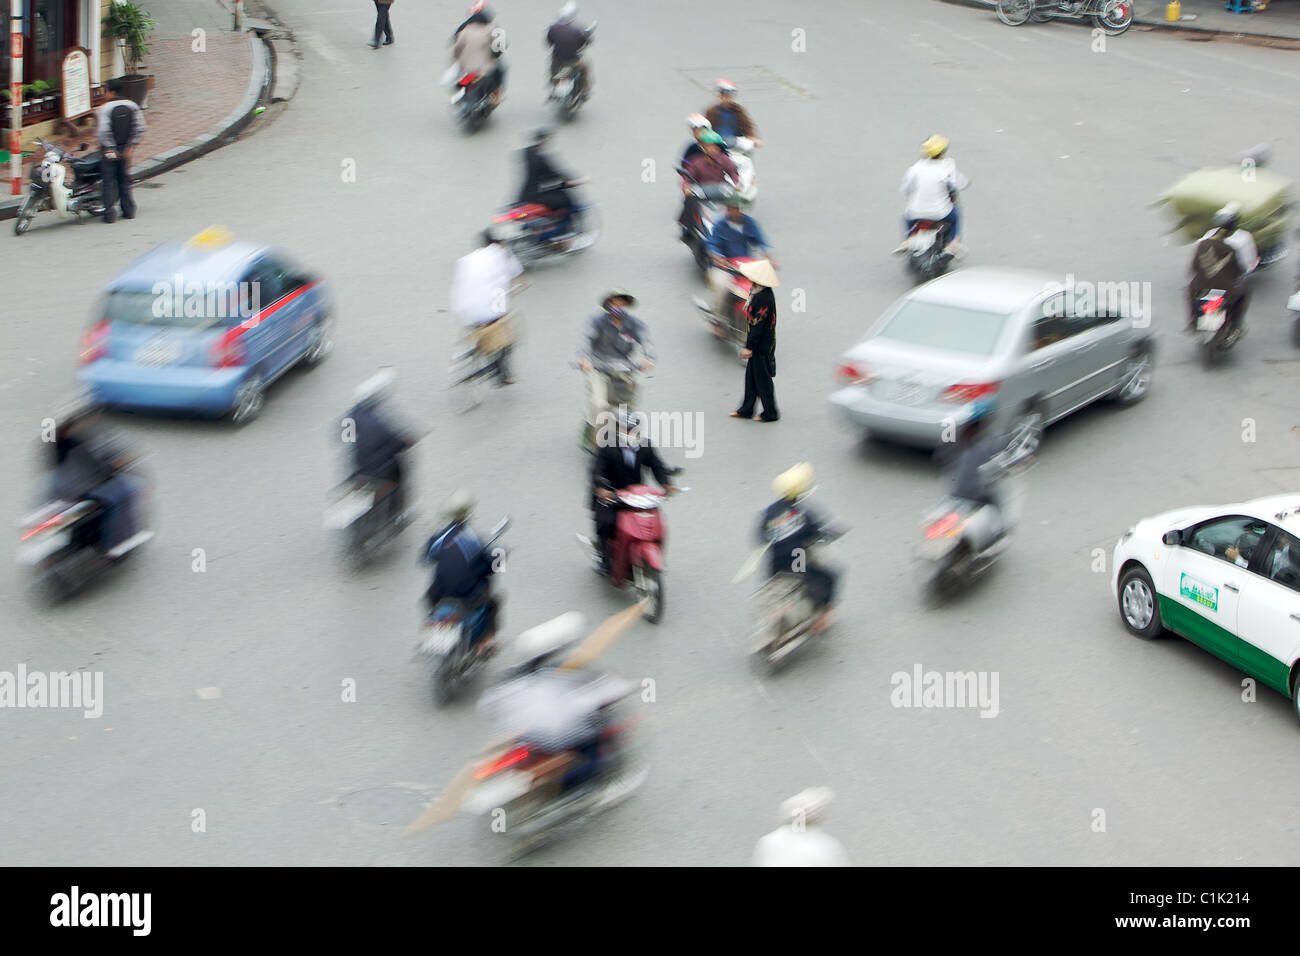 A lone woman is surrounded by motorbikes on a busy street in Hanoi, Vietnam (this has not been photo-shopped!) - Stock Image